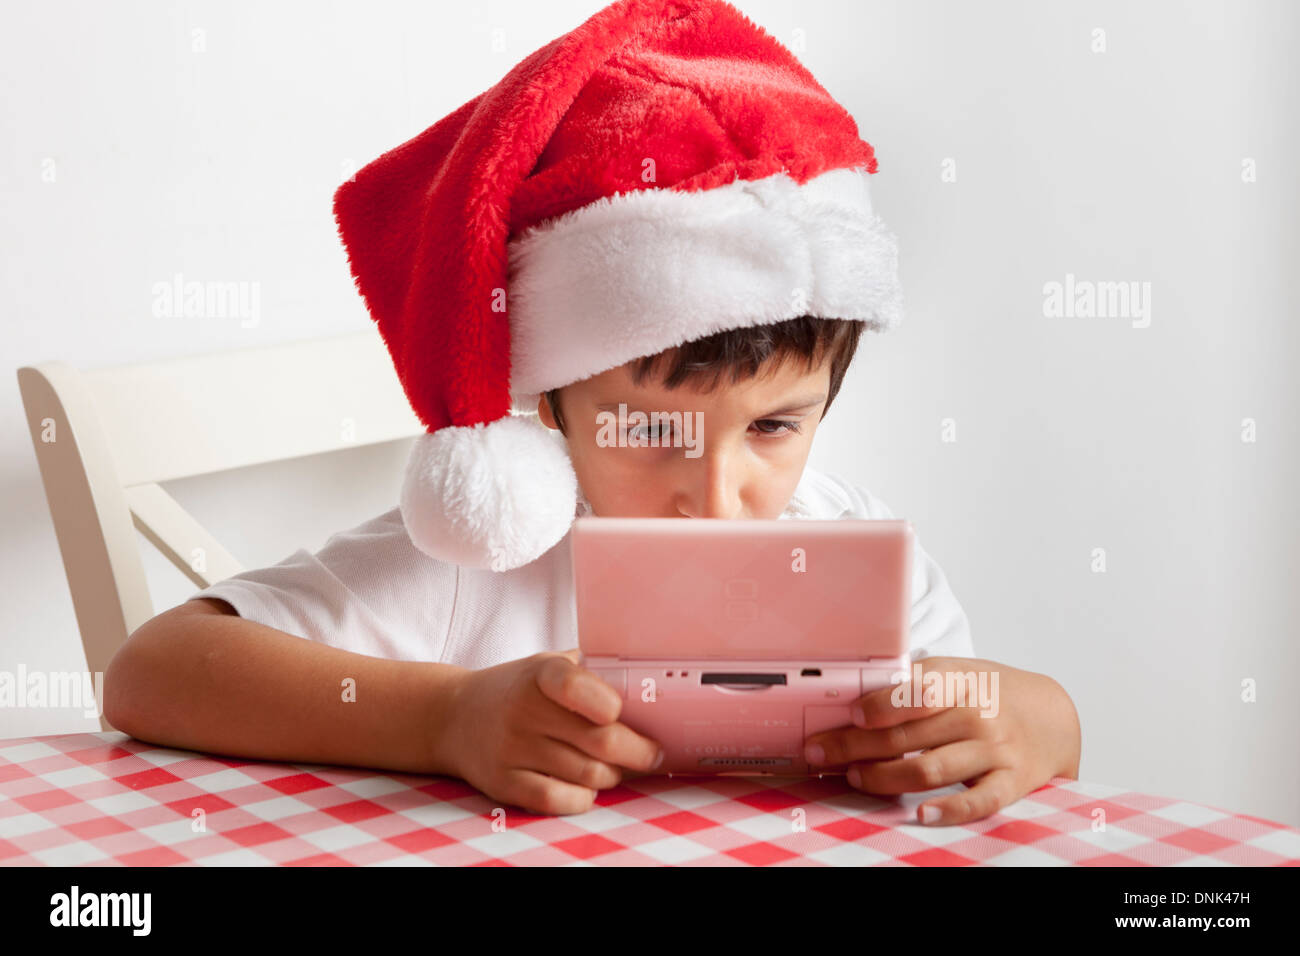 Boy in Santa's hat plays on Nintendo DS - Stock Image